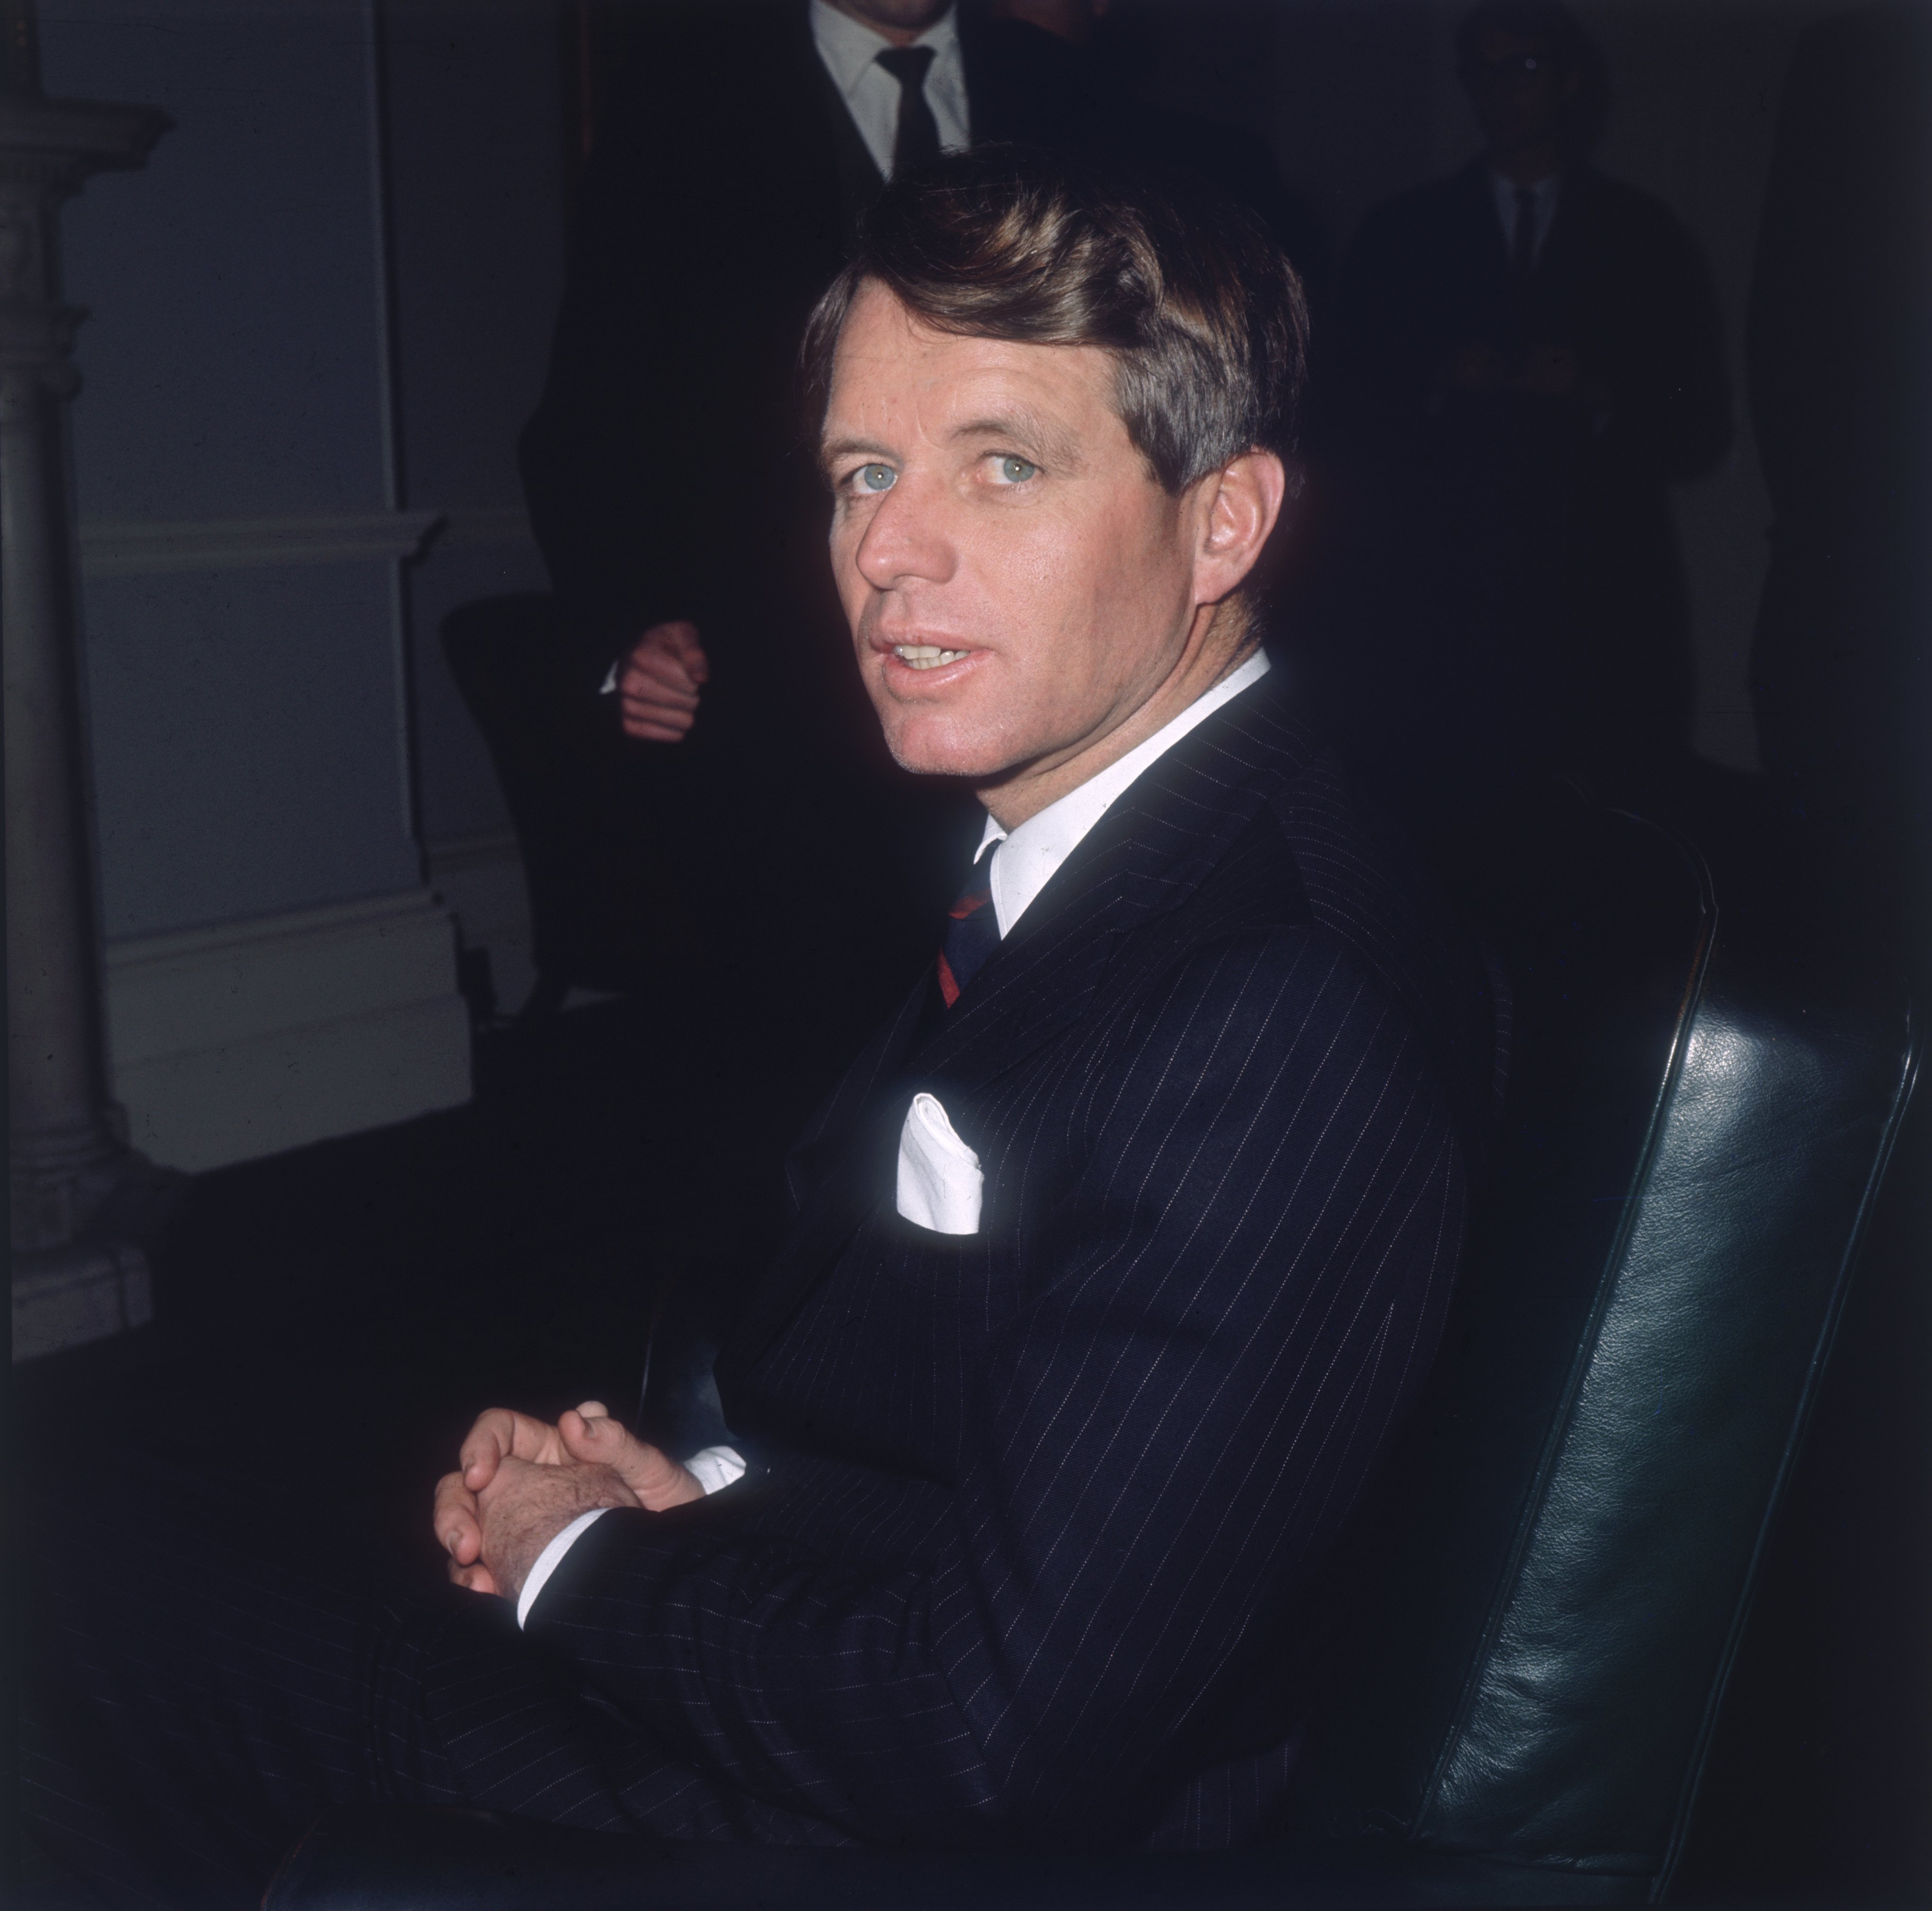 Senator Robert Kennedy (1925 - 1968), candidate for the Presidential nomination of the Democratic Party and brother of the late President John F Kennedy, during a visit to London, May 1967 | Photo: Getty Images